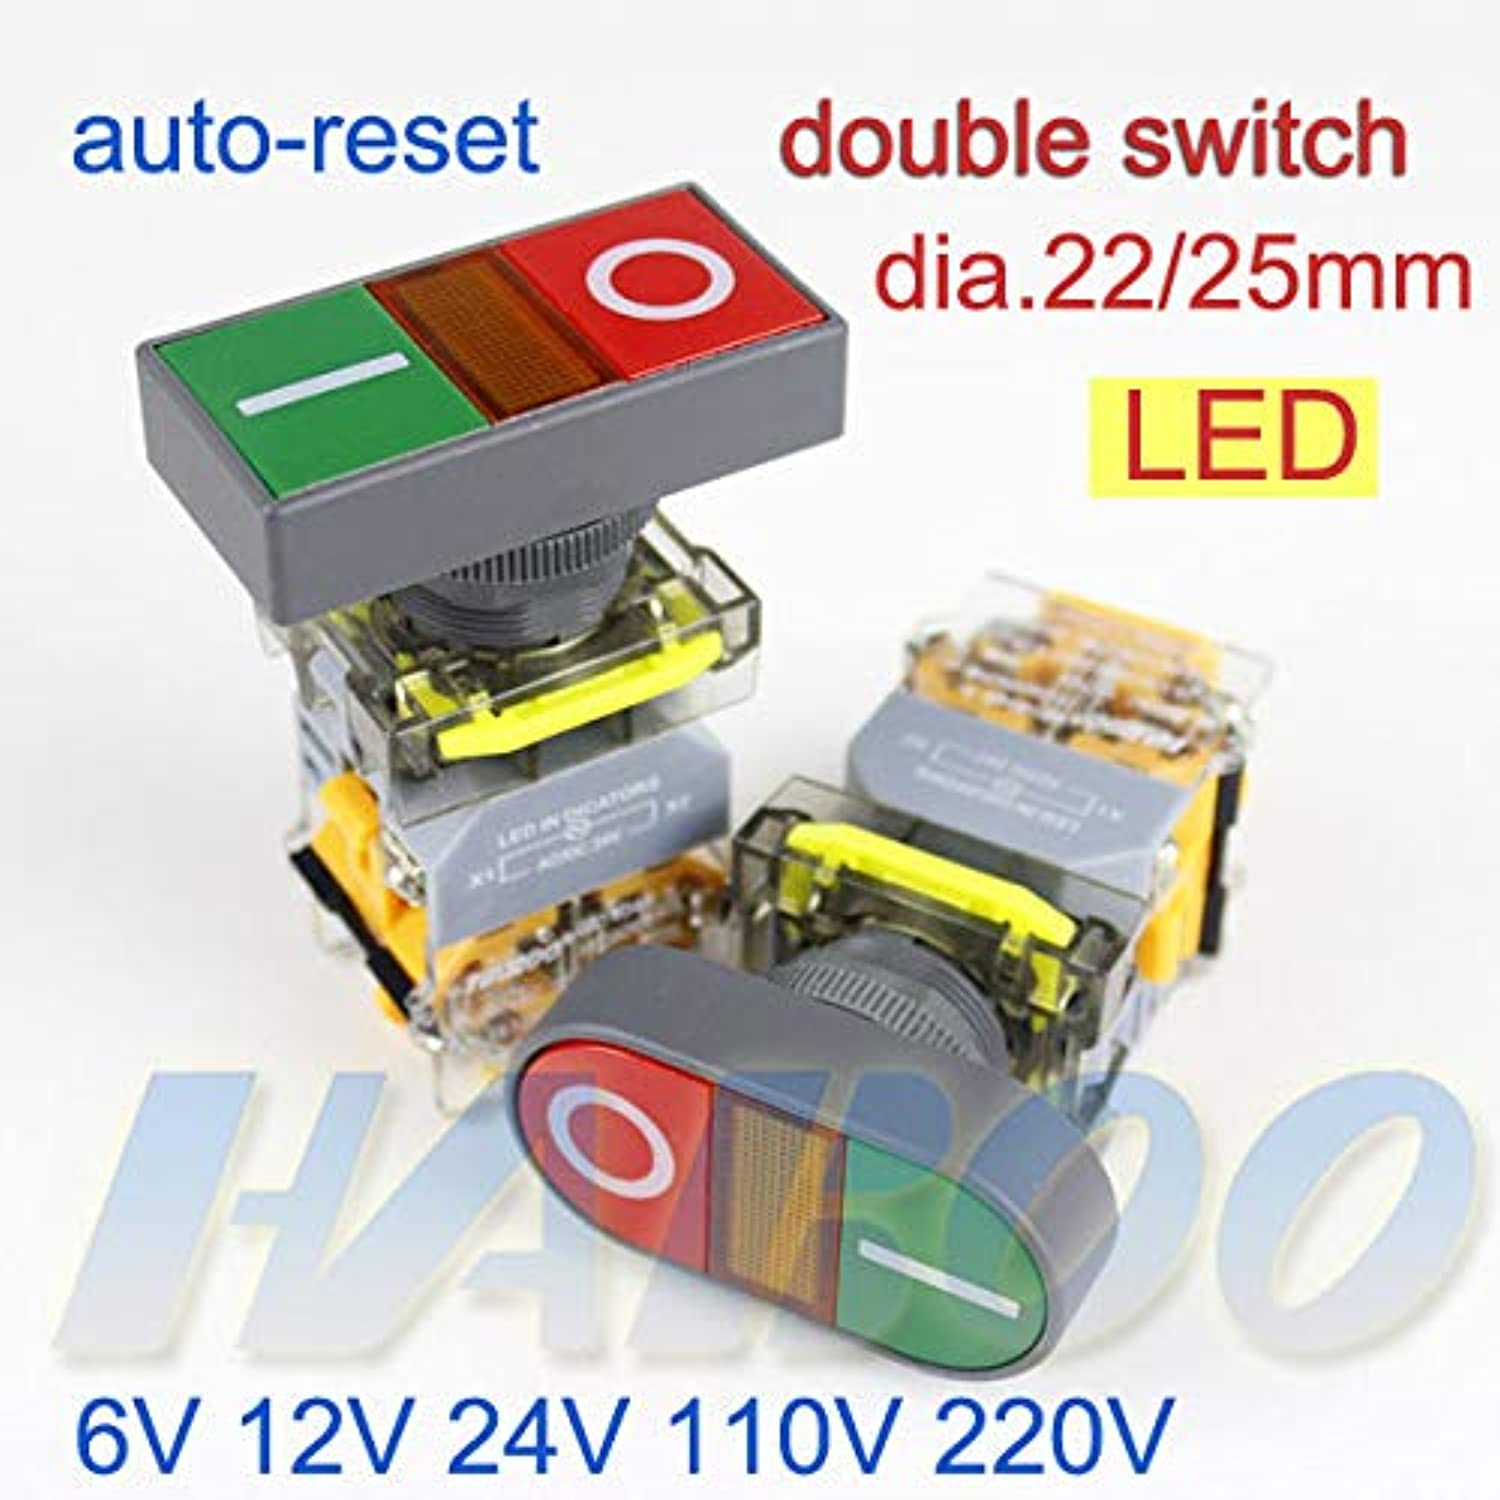 5PCS Packing Dia.22 25mm Double Switch with led red Green color 6V 12V 24V 110V 220V autoReset Double Switch 1NO+1NC 2NO 2NC  (color  Green 24V LED)